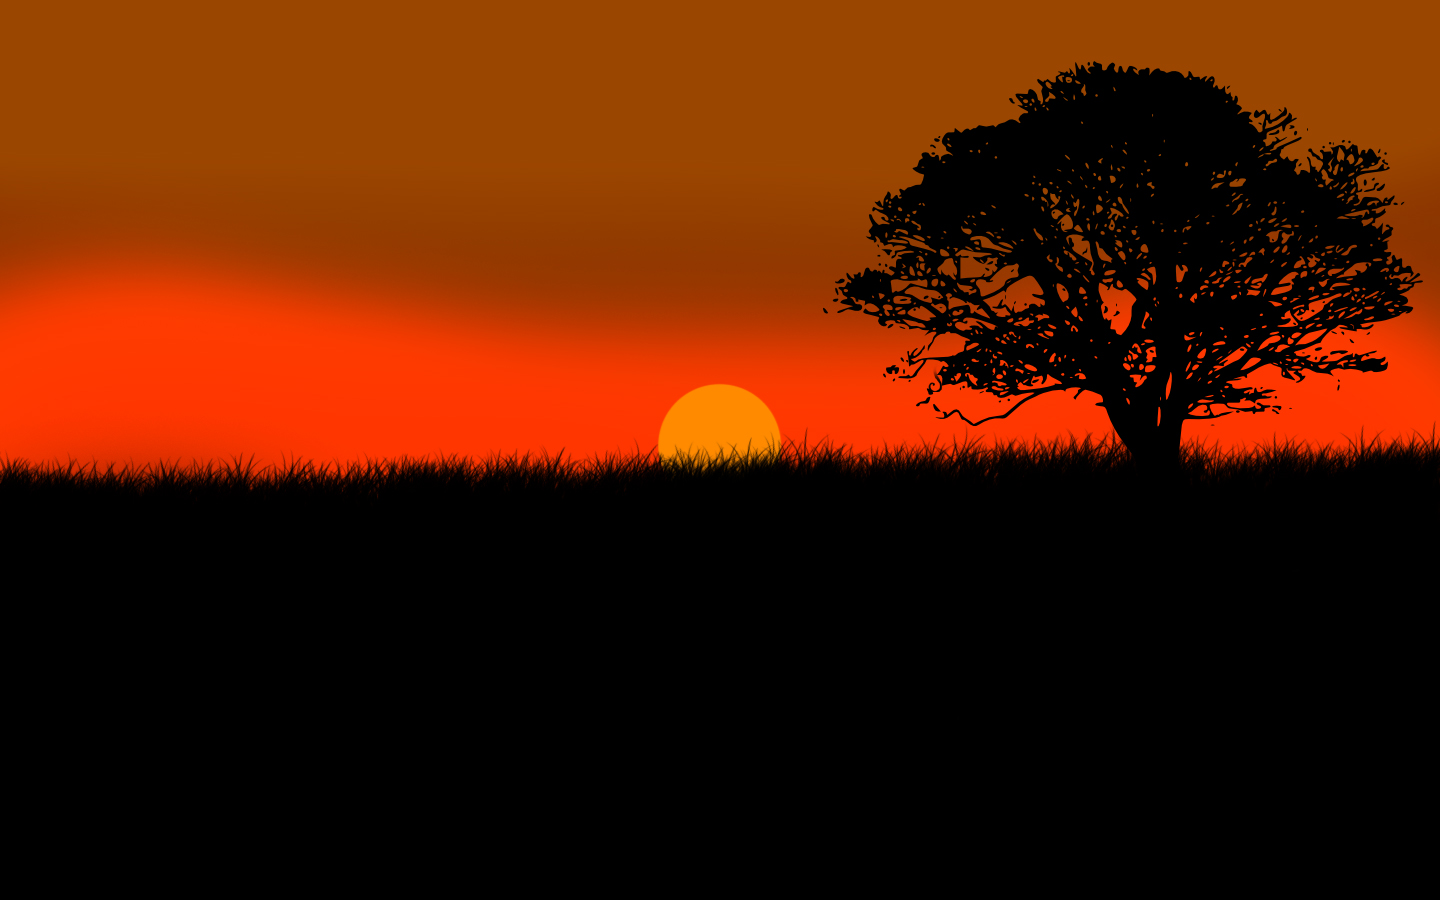 Sunset Over the Horizon by Corporal-Punishment on DeviantArt